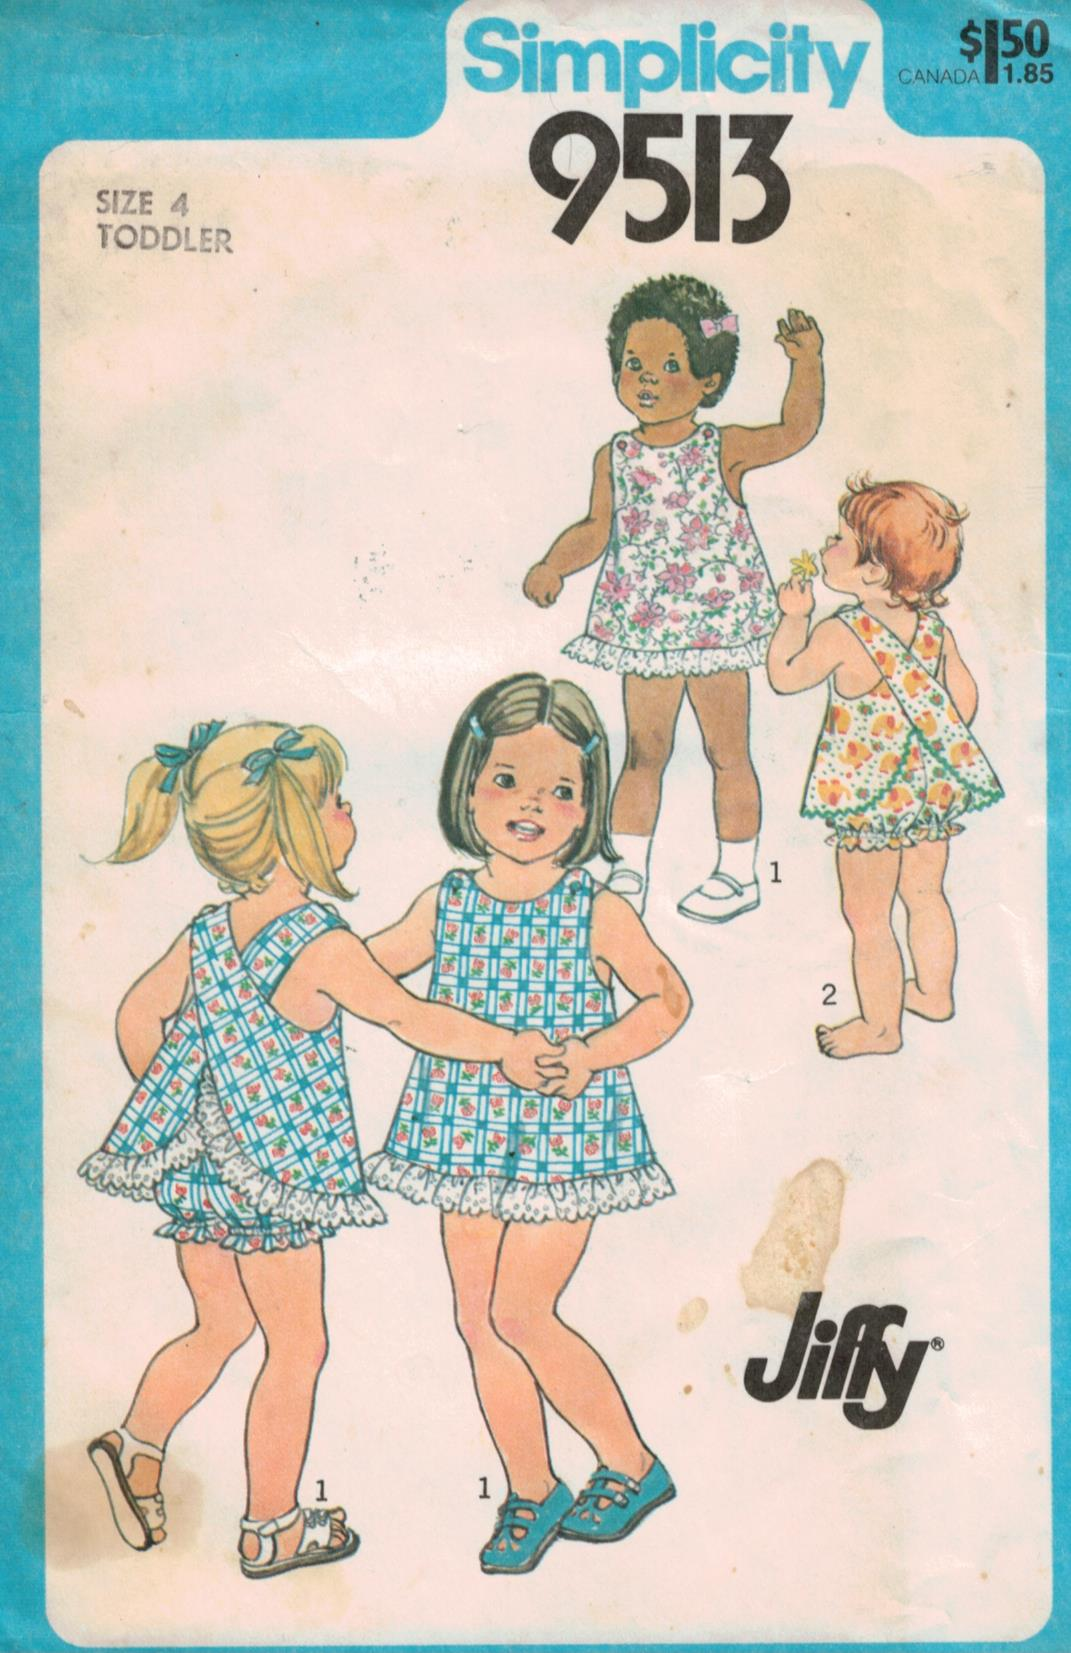 Simplicity Pattern 9513 Toddler Jiffy Sundress and Bloomers Size 4 ...